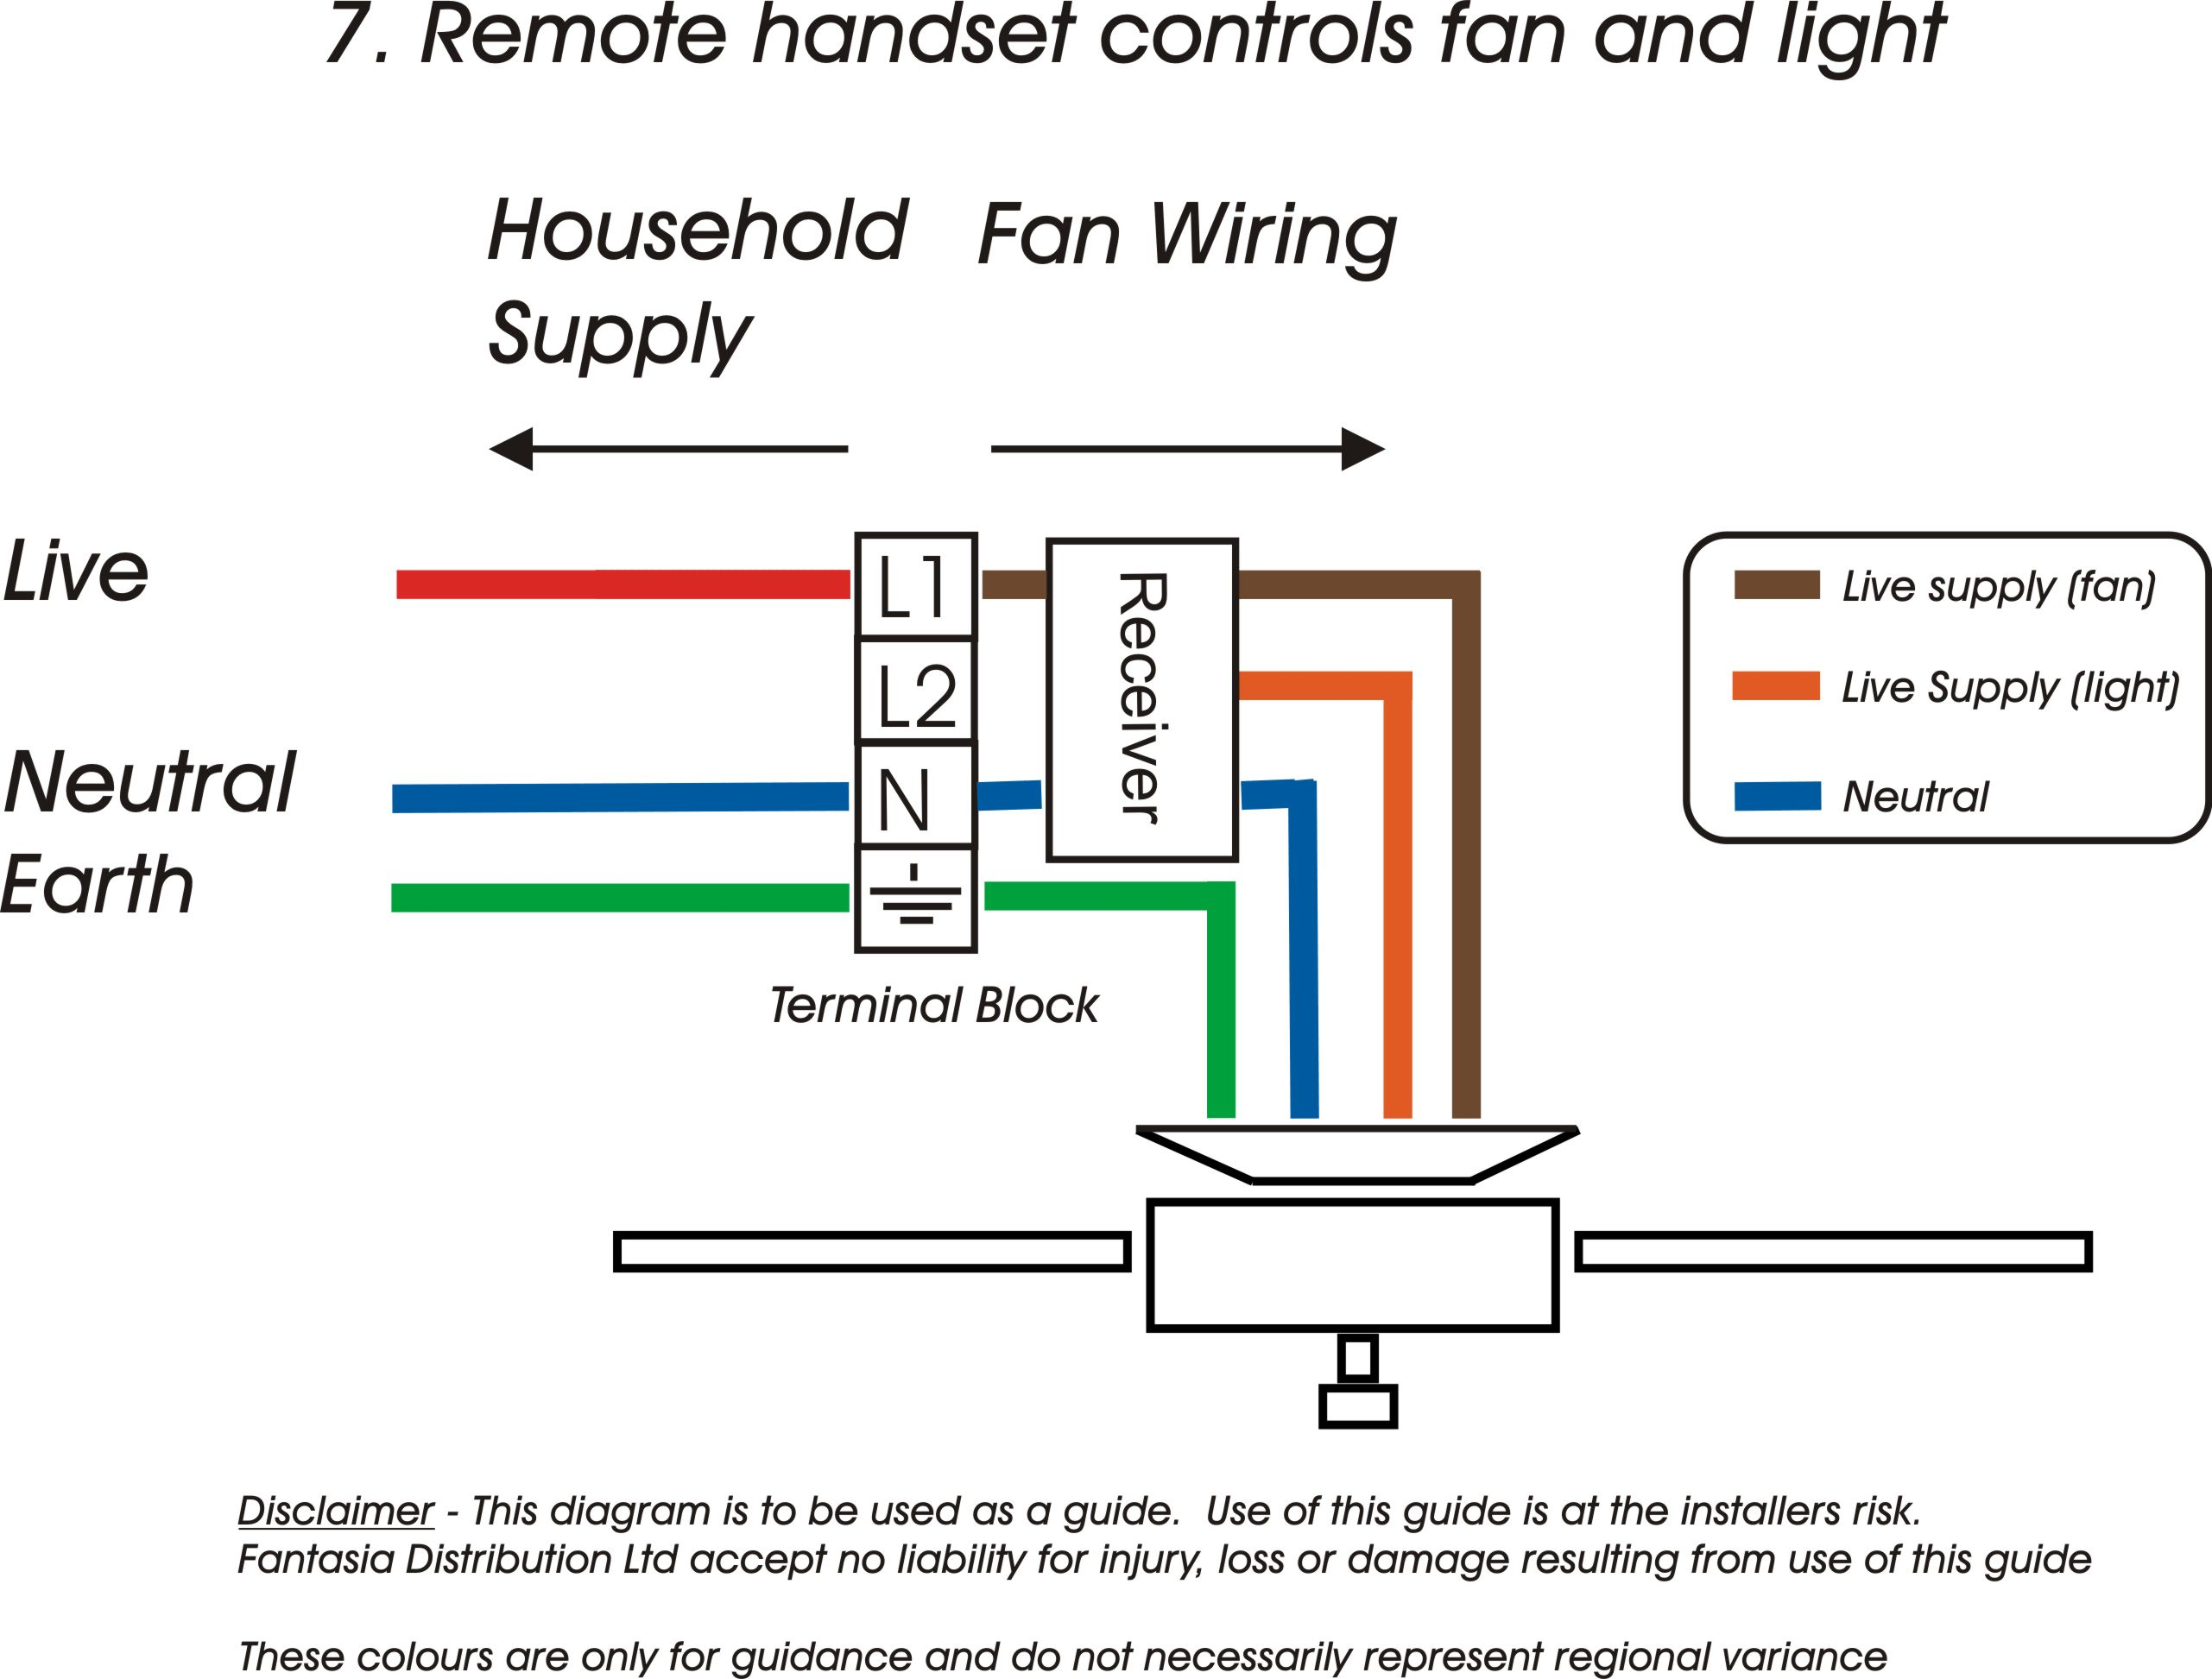 Fantasia Fans | Fantasia Ceiling Fans Wiring Information - Wiring Diagram For Ceiling Fan